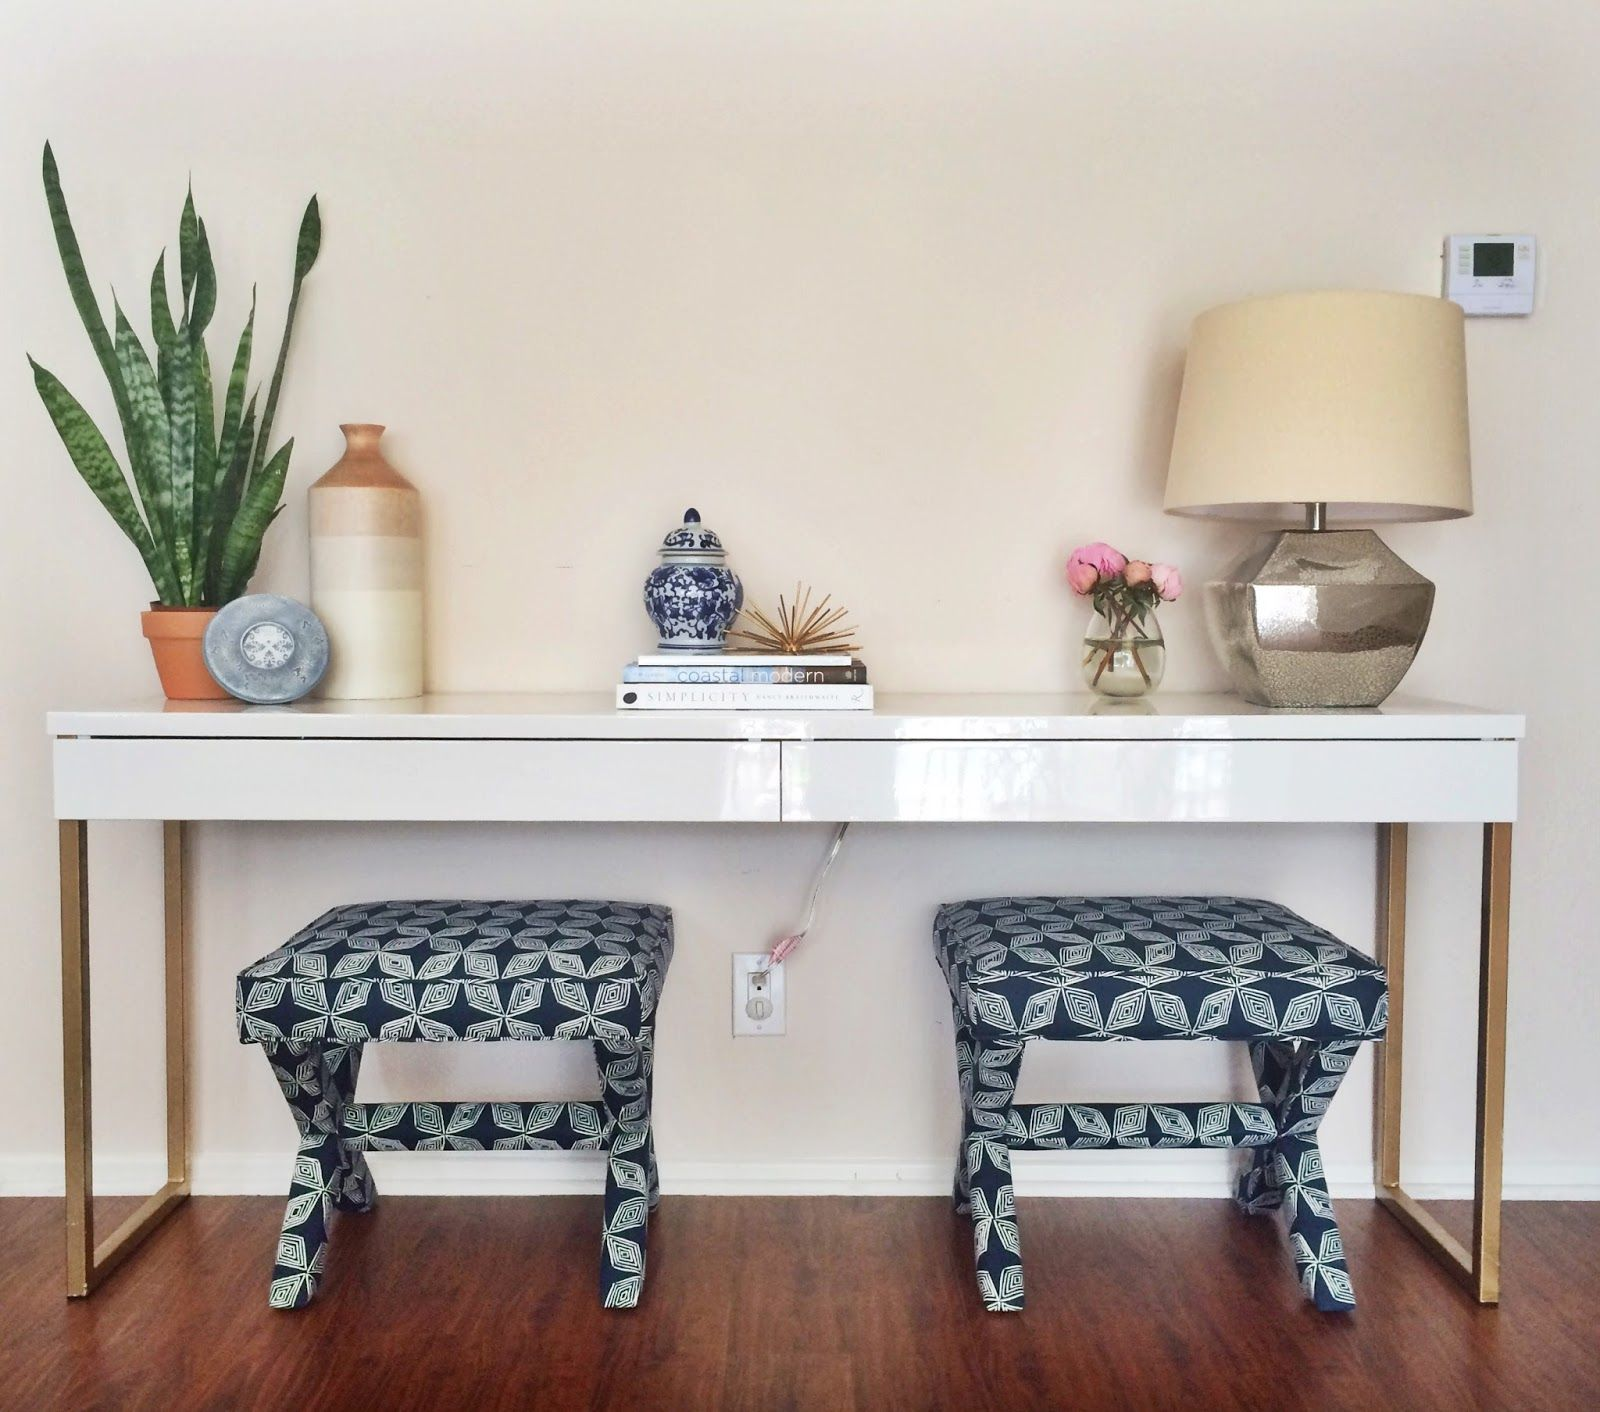 Schlafzimmer Ideen Low Budget Ikea Besta Burs Desk Hack Google Search Ideas Pinterest